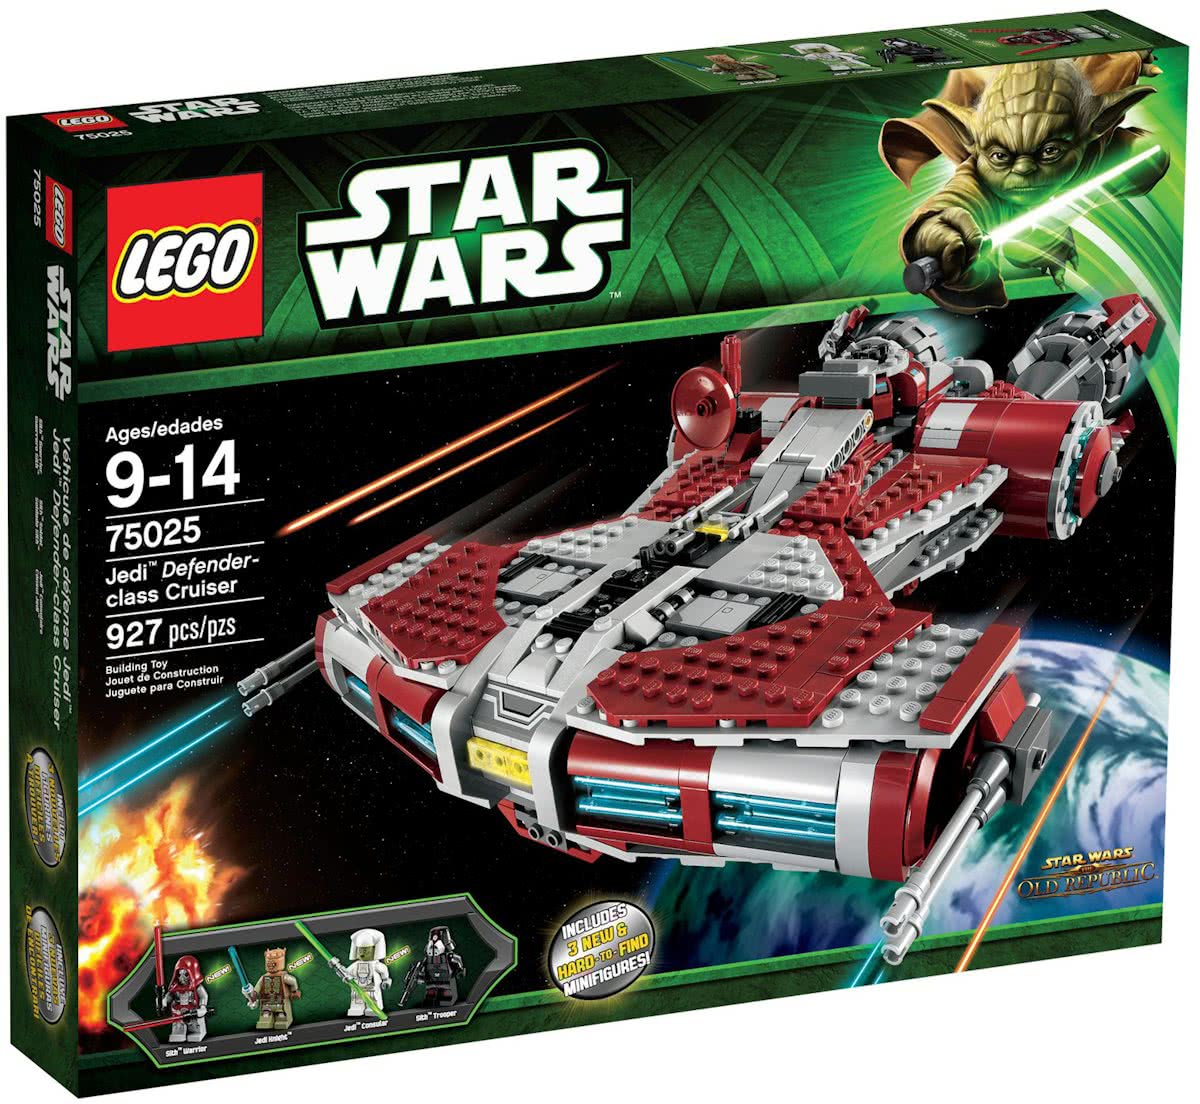 LEGO Star Wars Jedi Defender - 75025